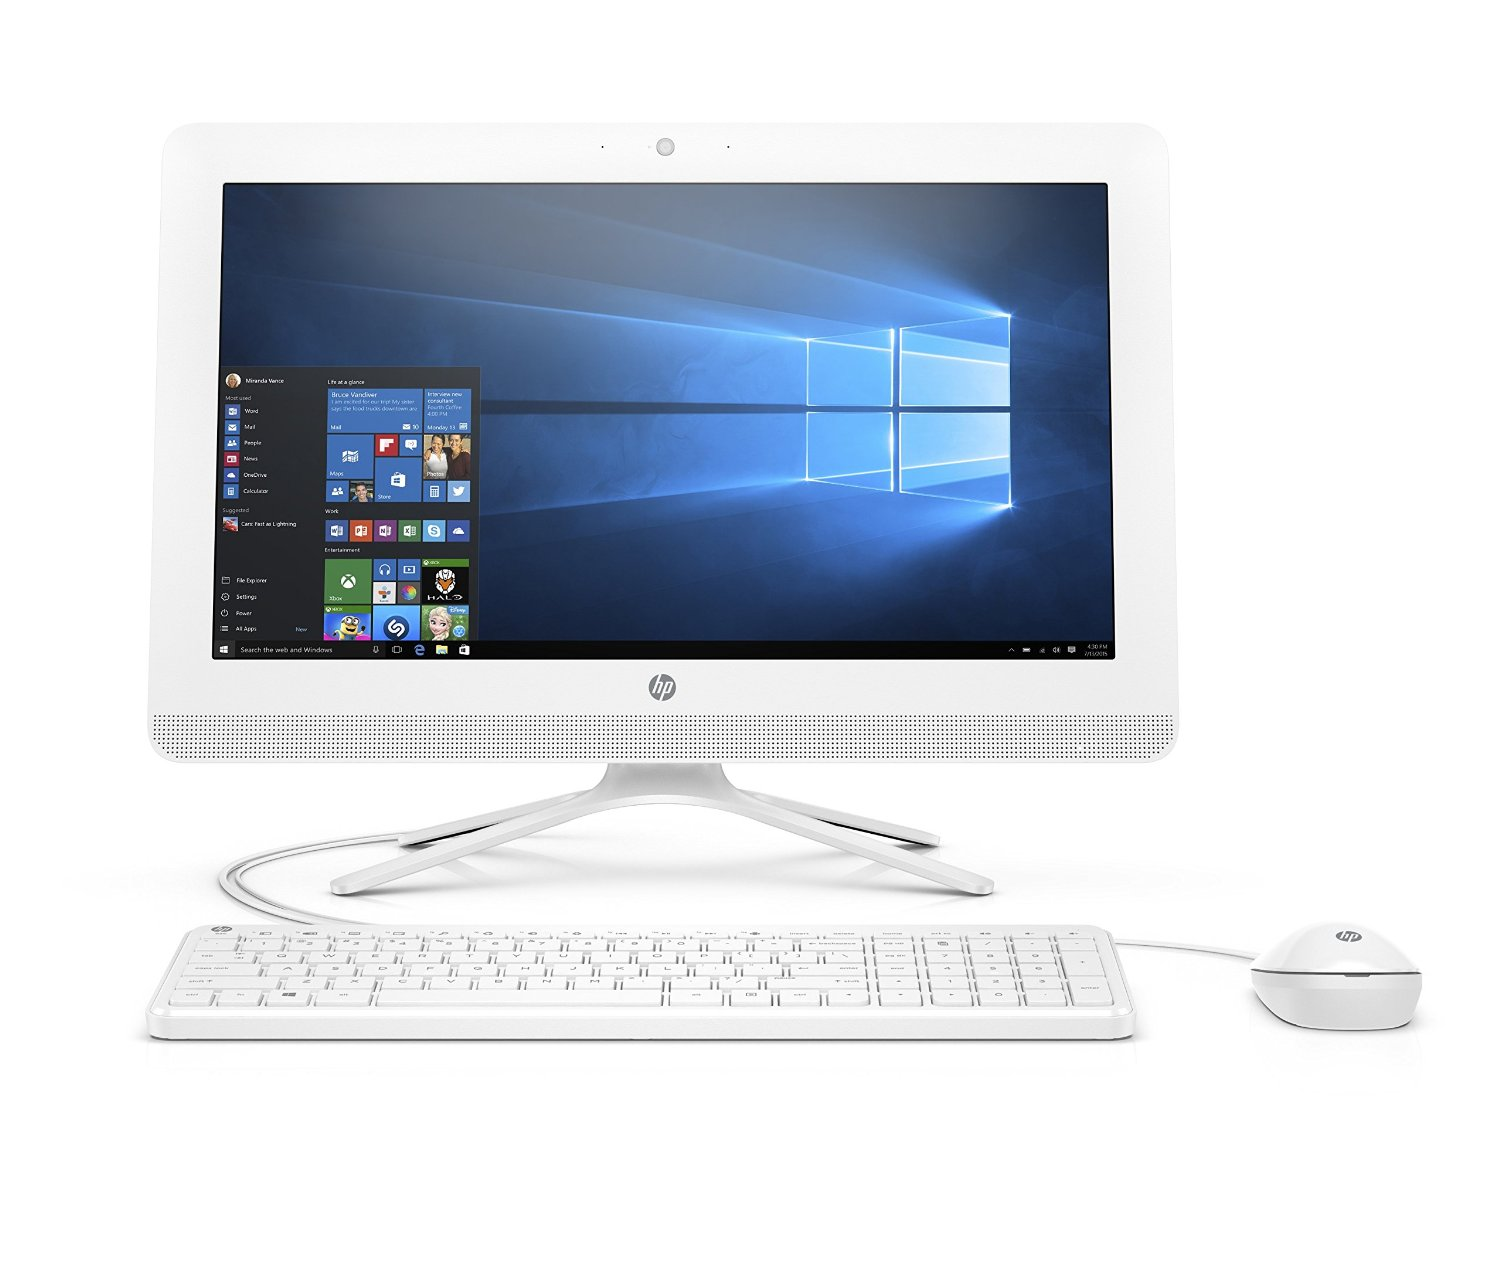 hp envy 19 5 all in one 4gb 1tb windows 10 white v8p48aa aba check back soon blinq. Black Bedroom Furniture Sets. Home Design Ideas